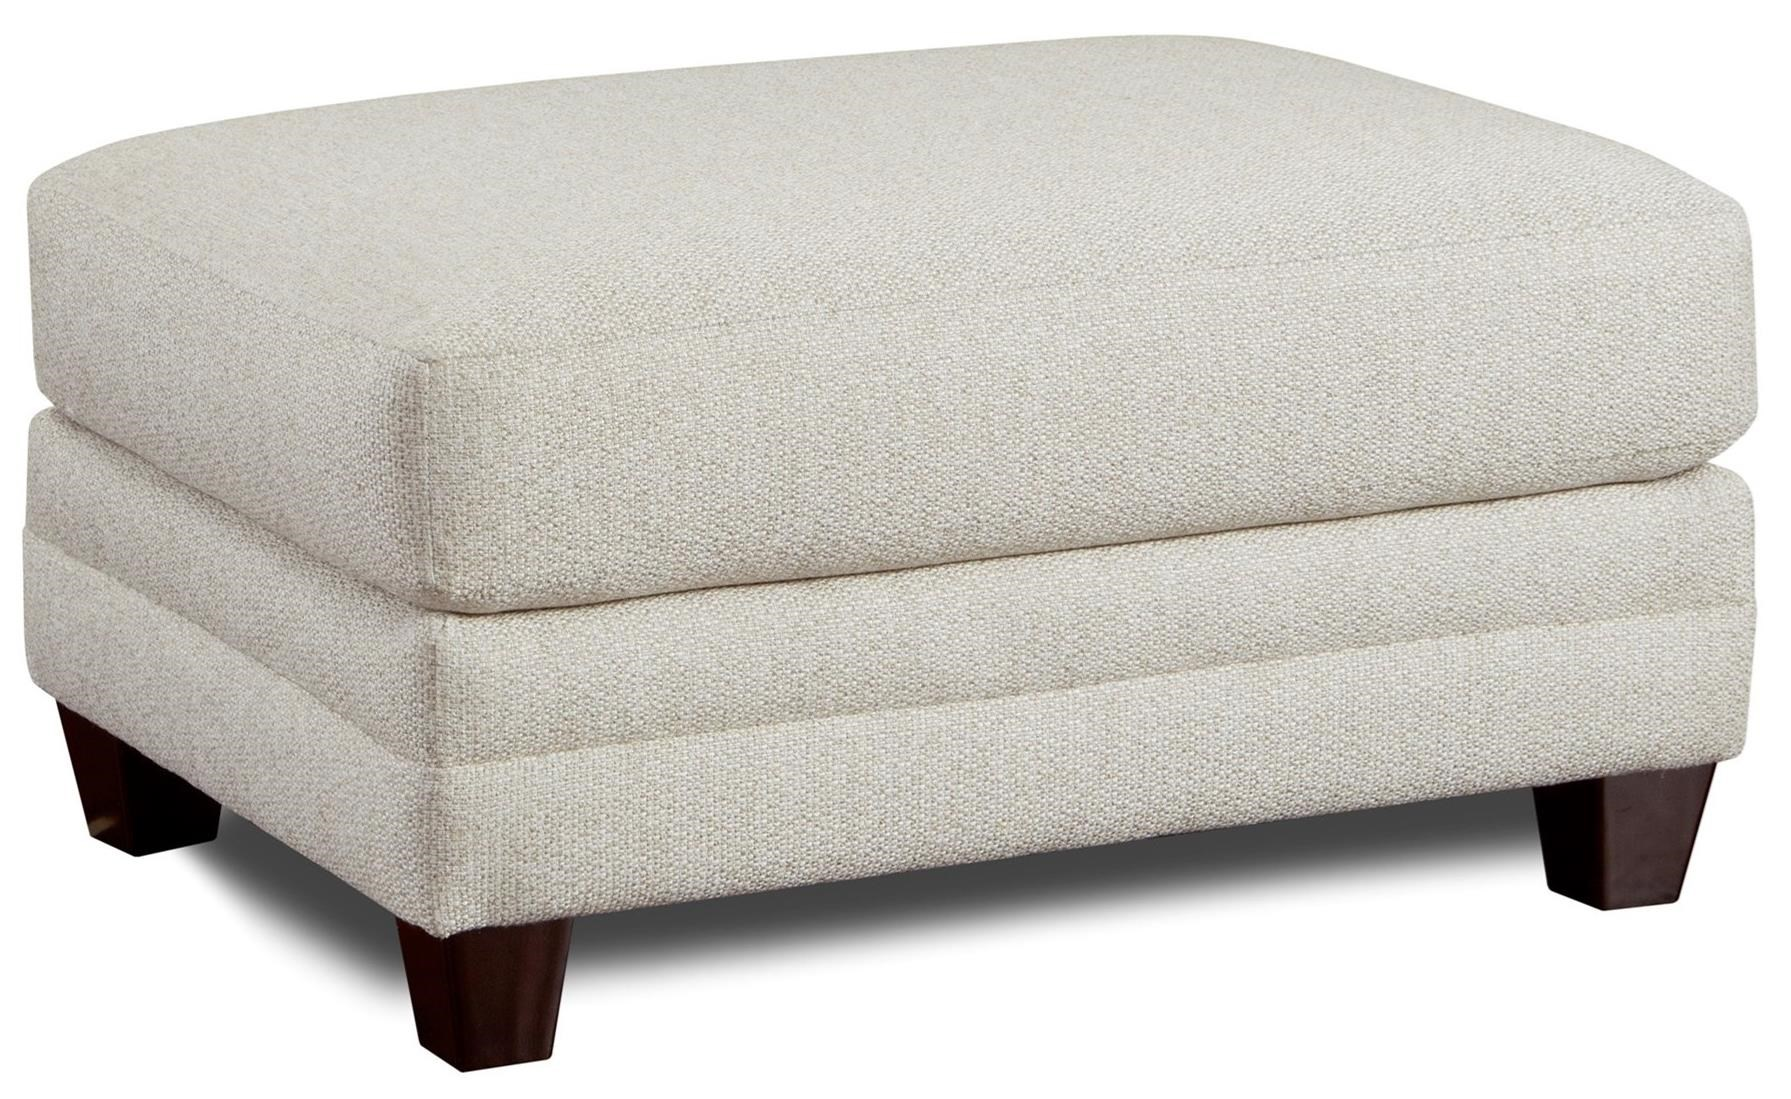 4480-KP Ottoman by Fusion Furniture at Prime Brothers Furniture